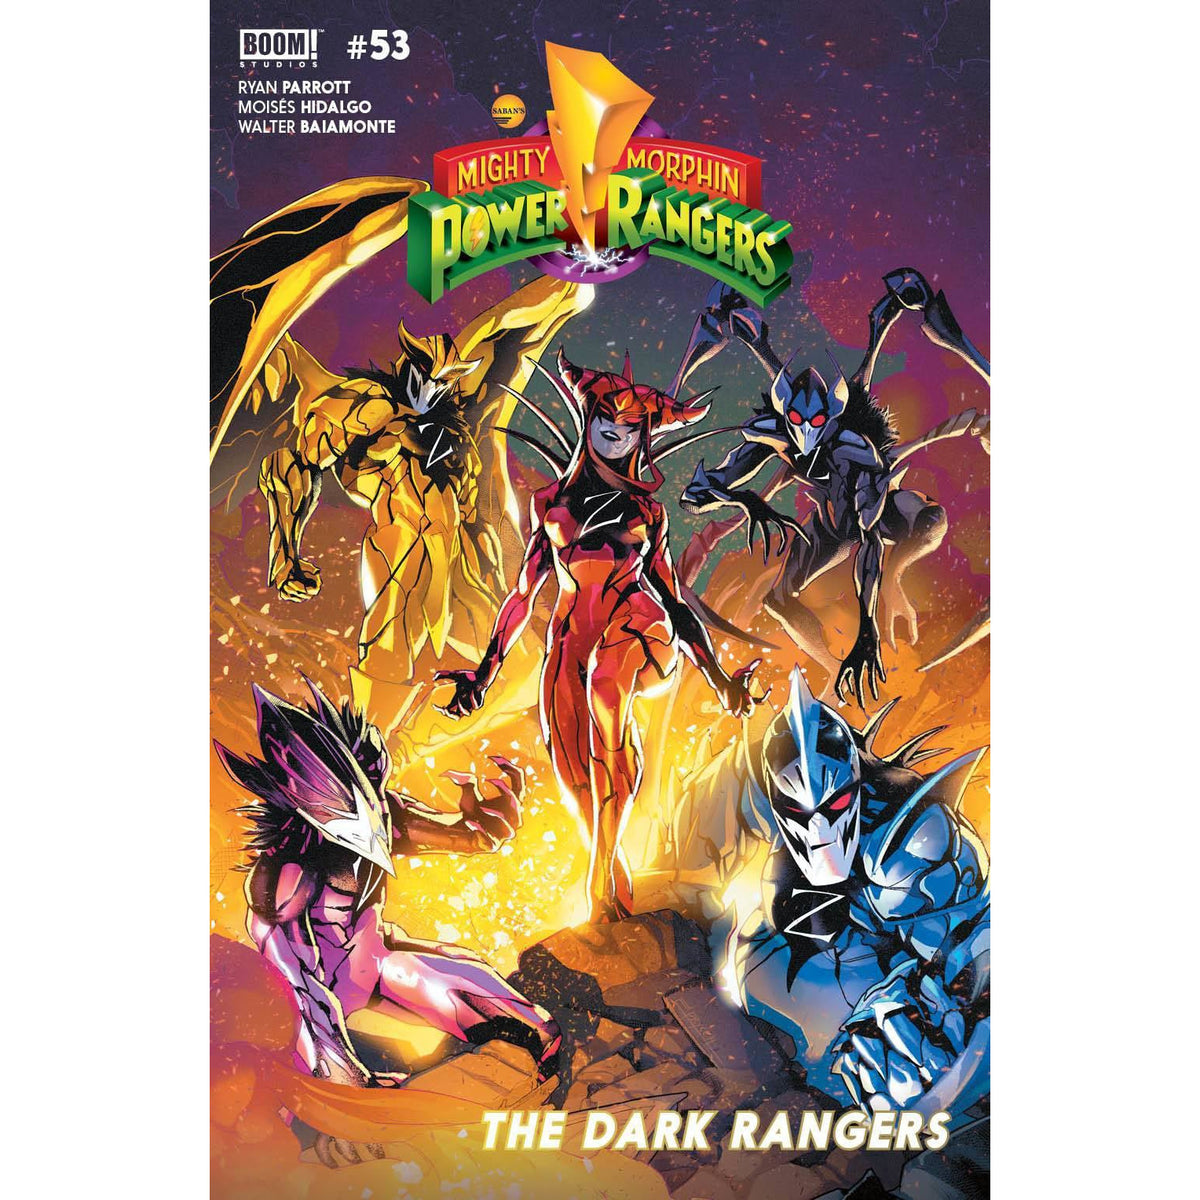 MIGHTY MORPHIN POWER RANGERS #53 COVER A CAMPBELL